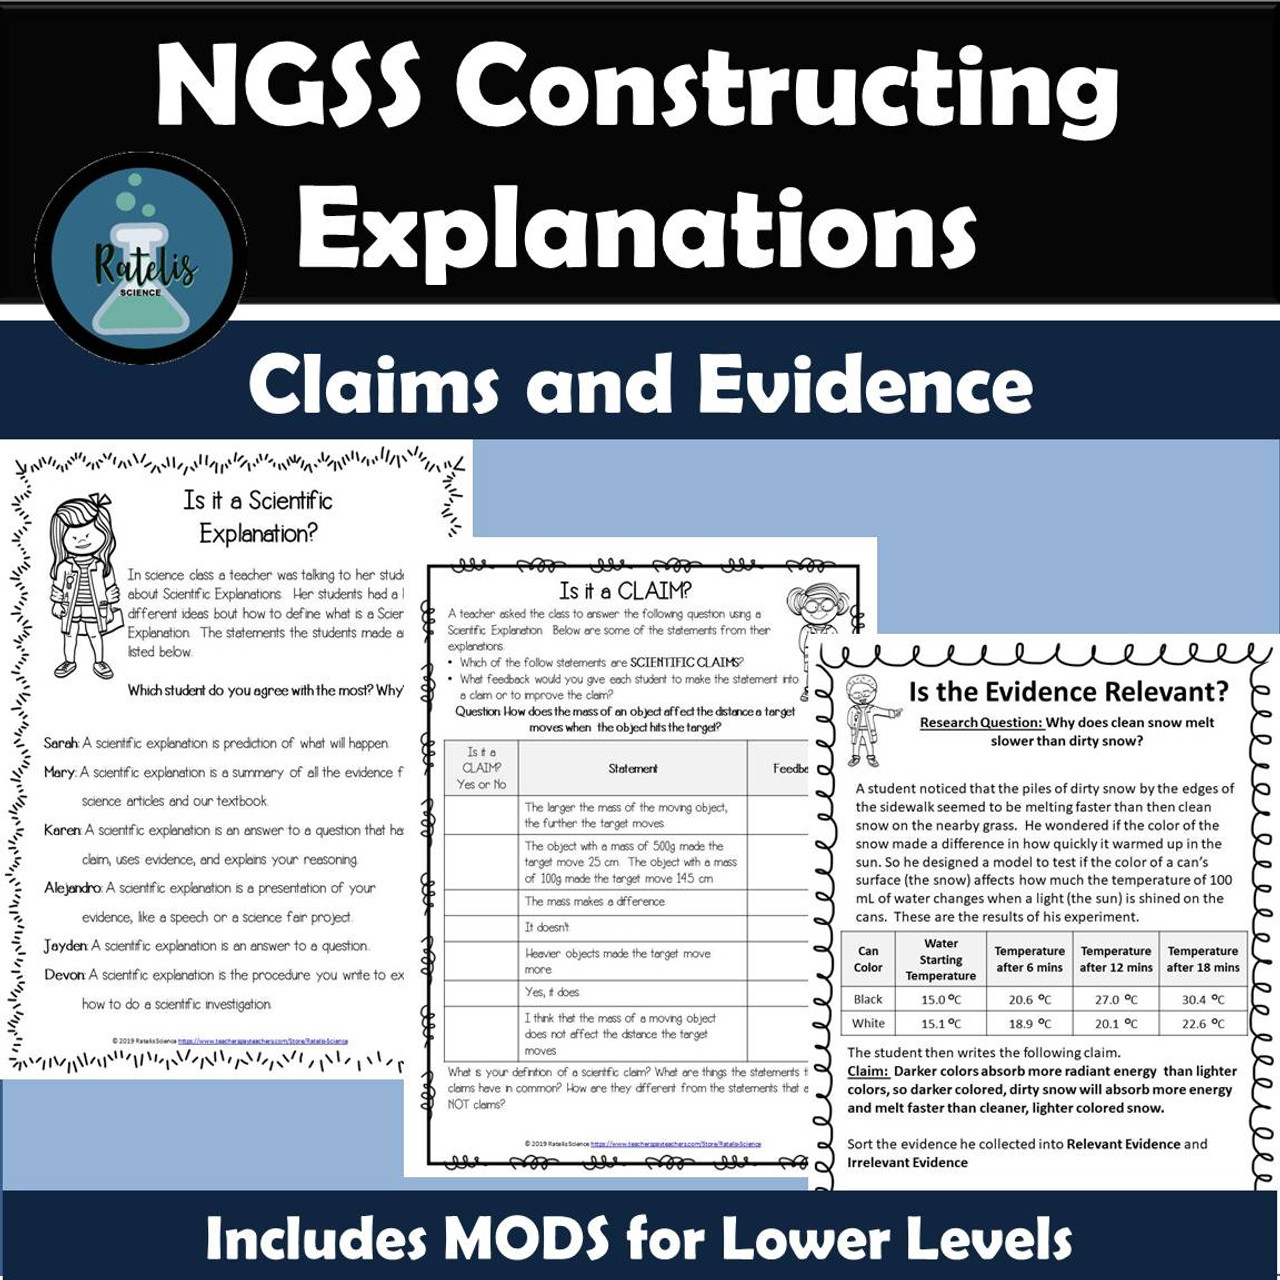 NGSS Constructing Explanations:Claims and Evidence